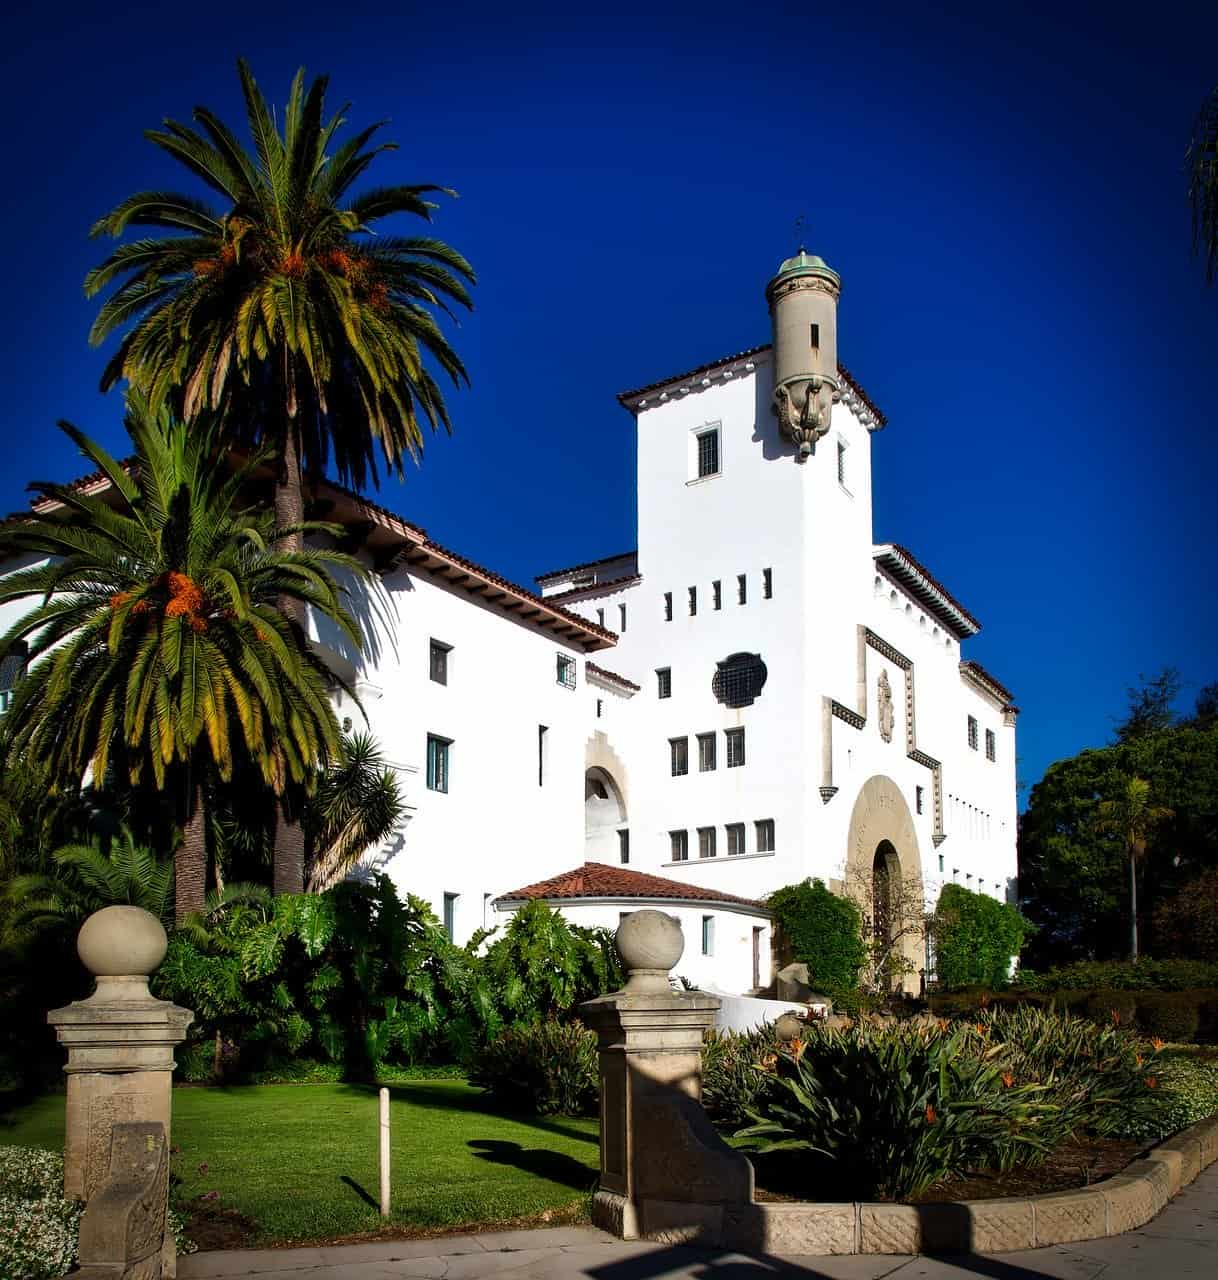 Santa Barbara courthouse is a good place to visit in Santa Barbara